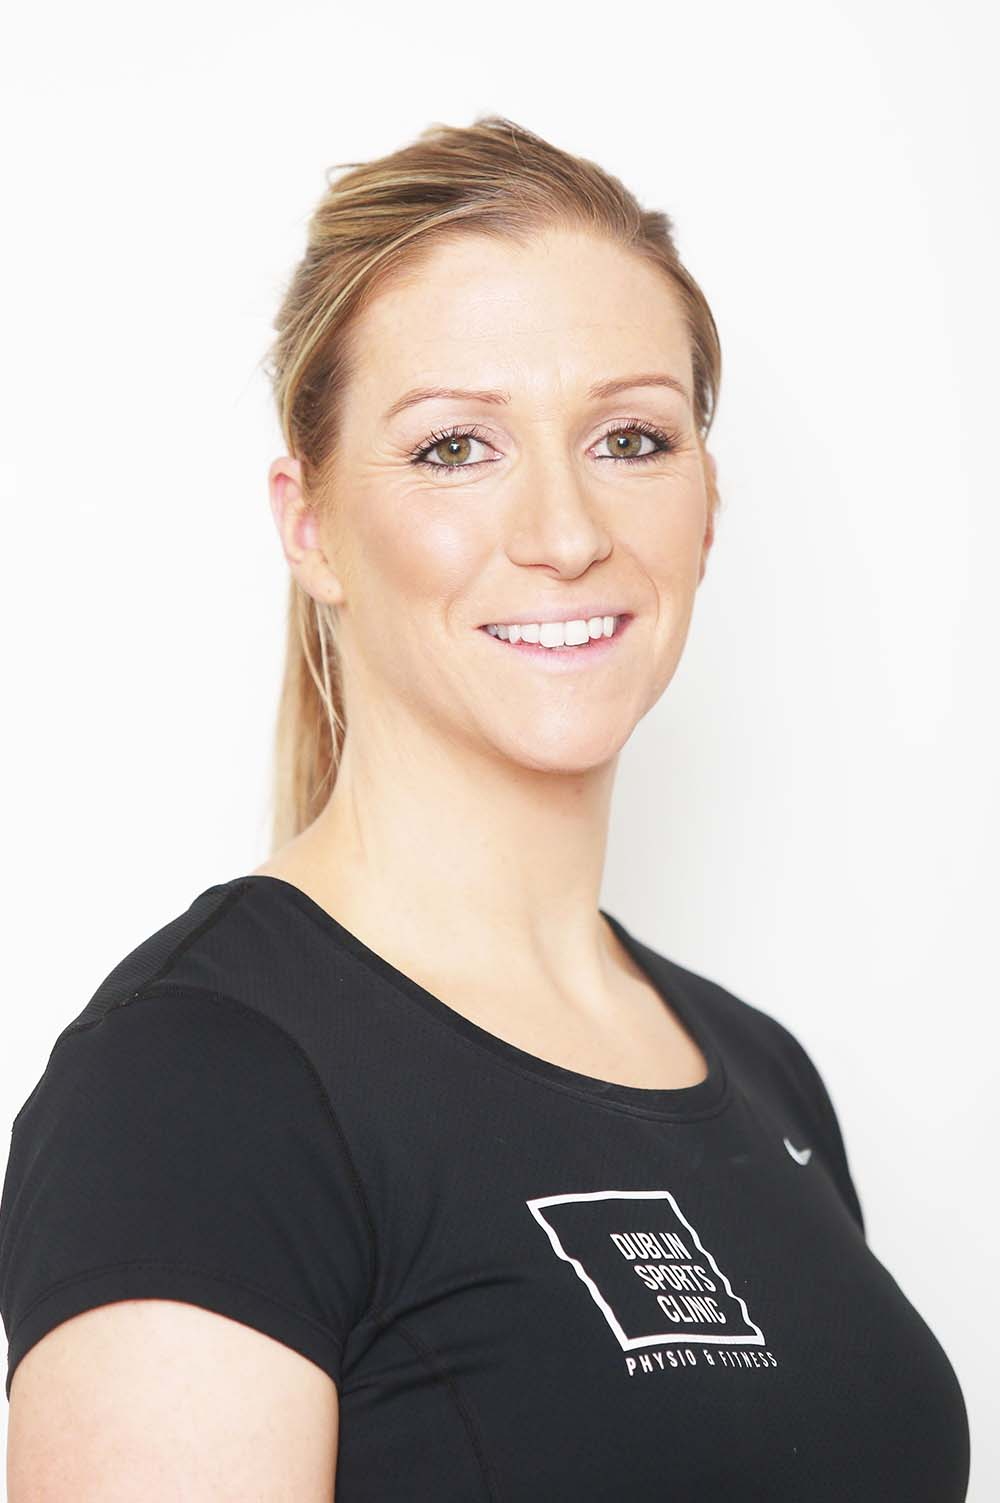 Fiona Oppermann Director of Dublin Sports Clinic